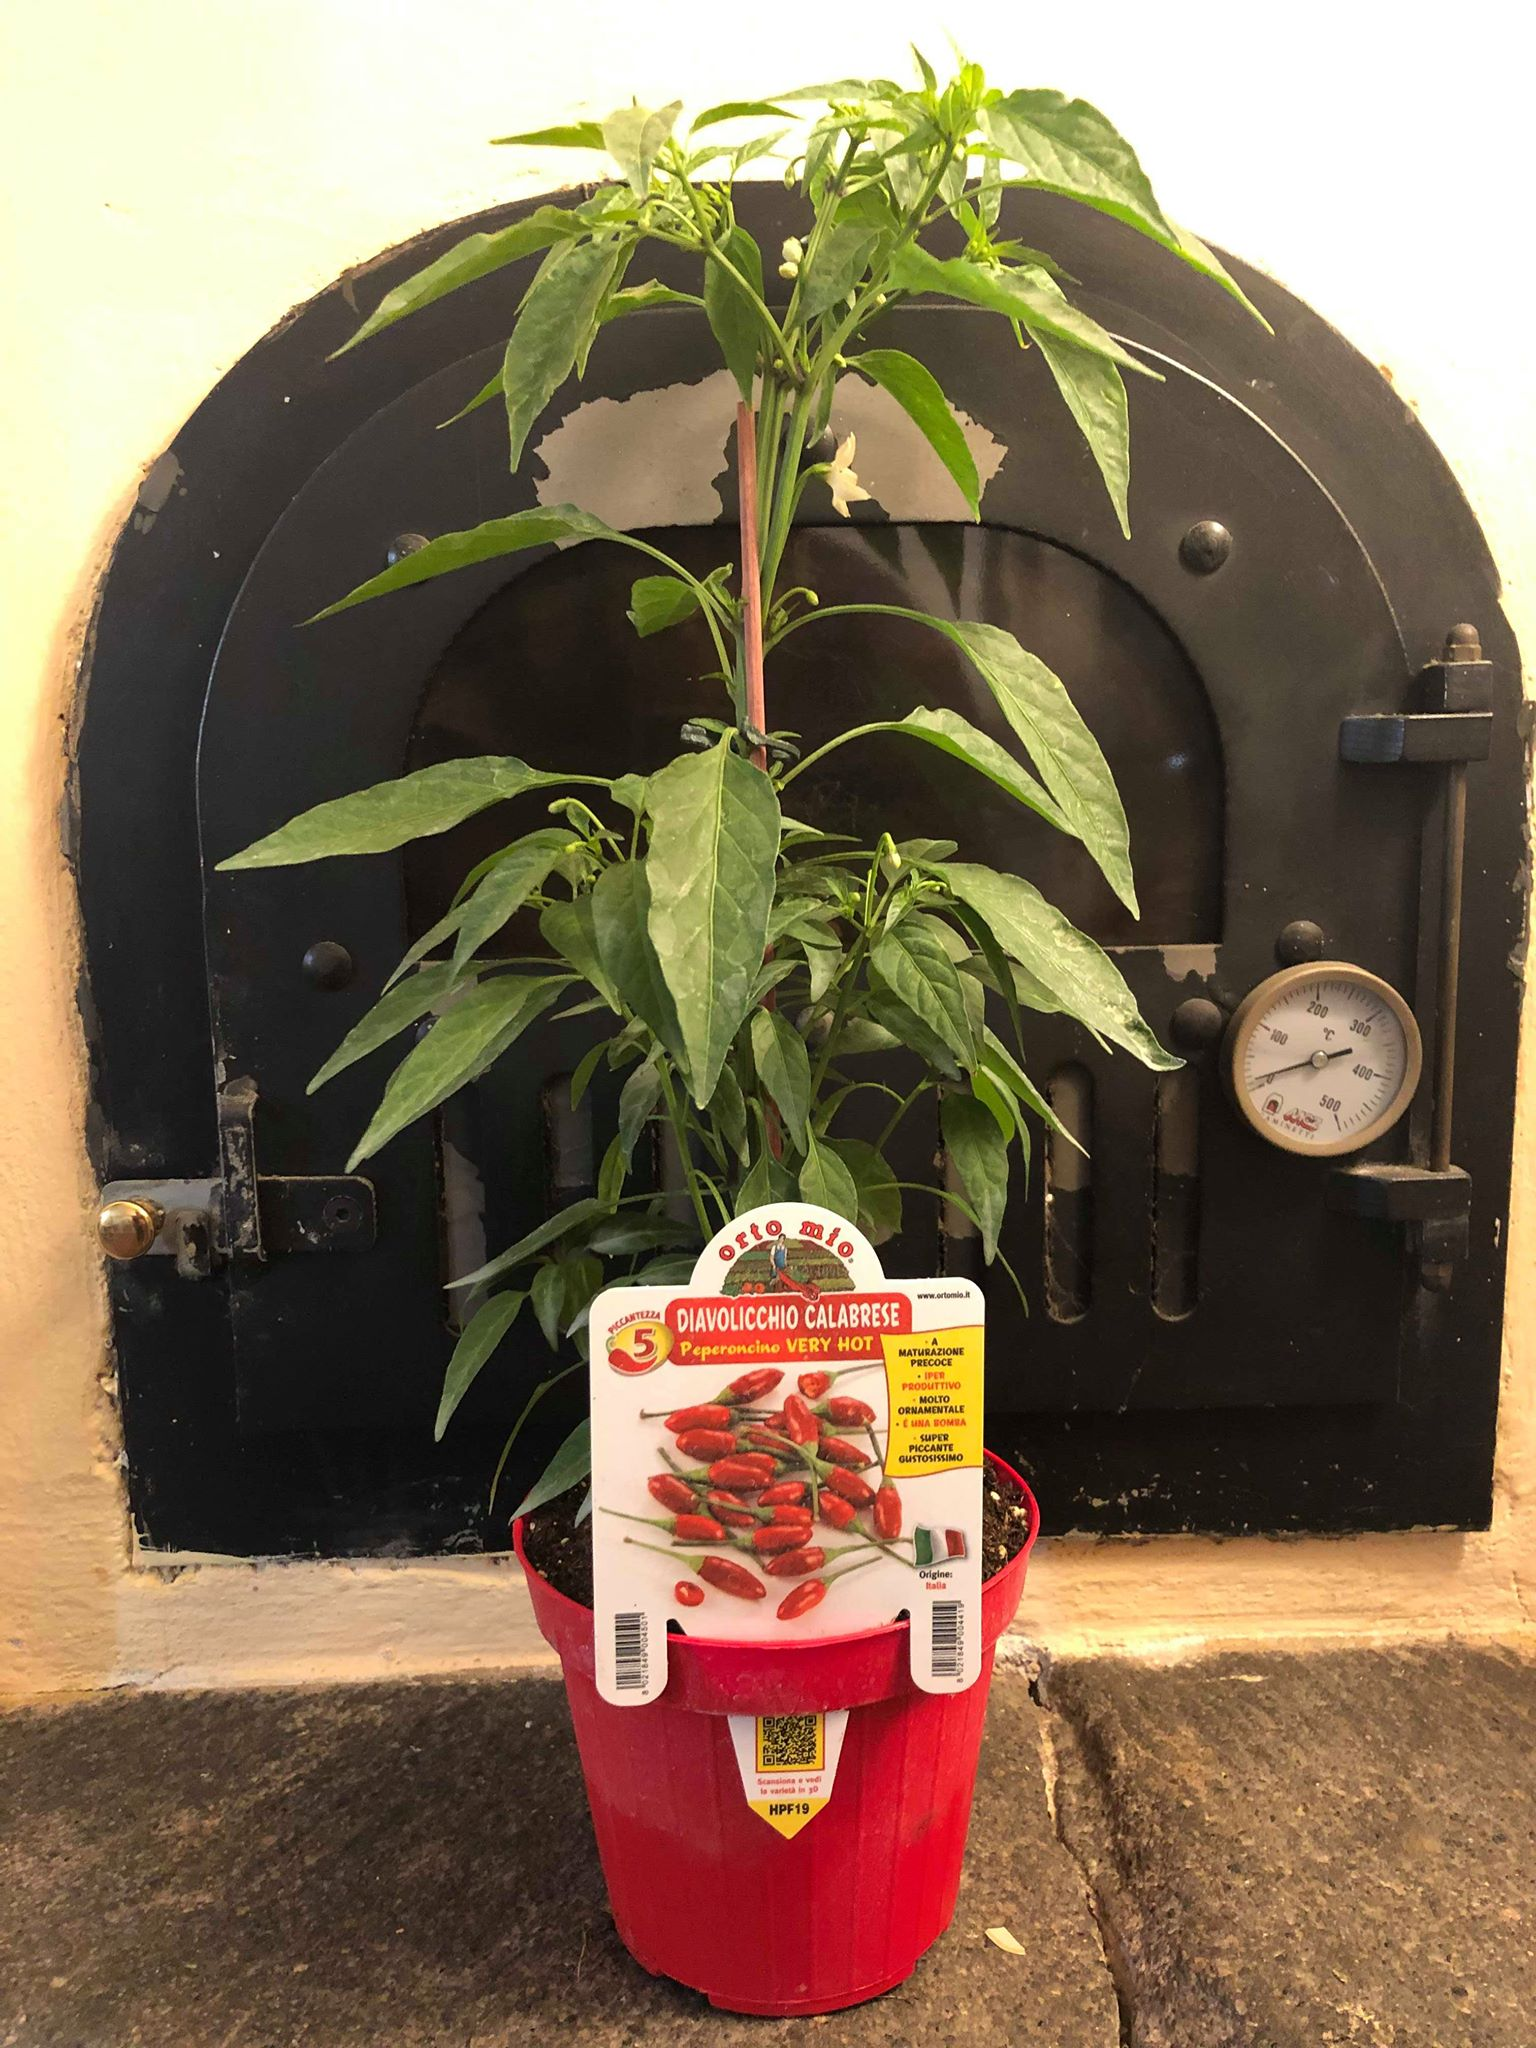 Hot Pepper Calabrese VERY HOT diavolicchio Italico Pot Plant - Orto mio